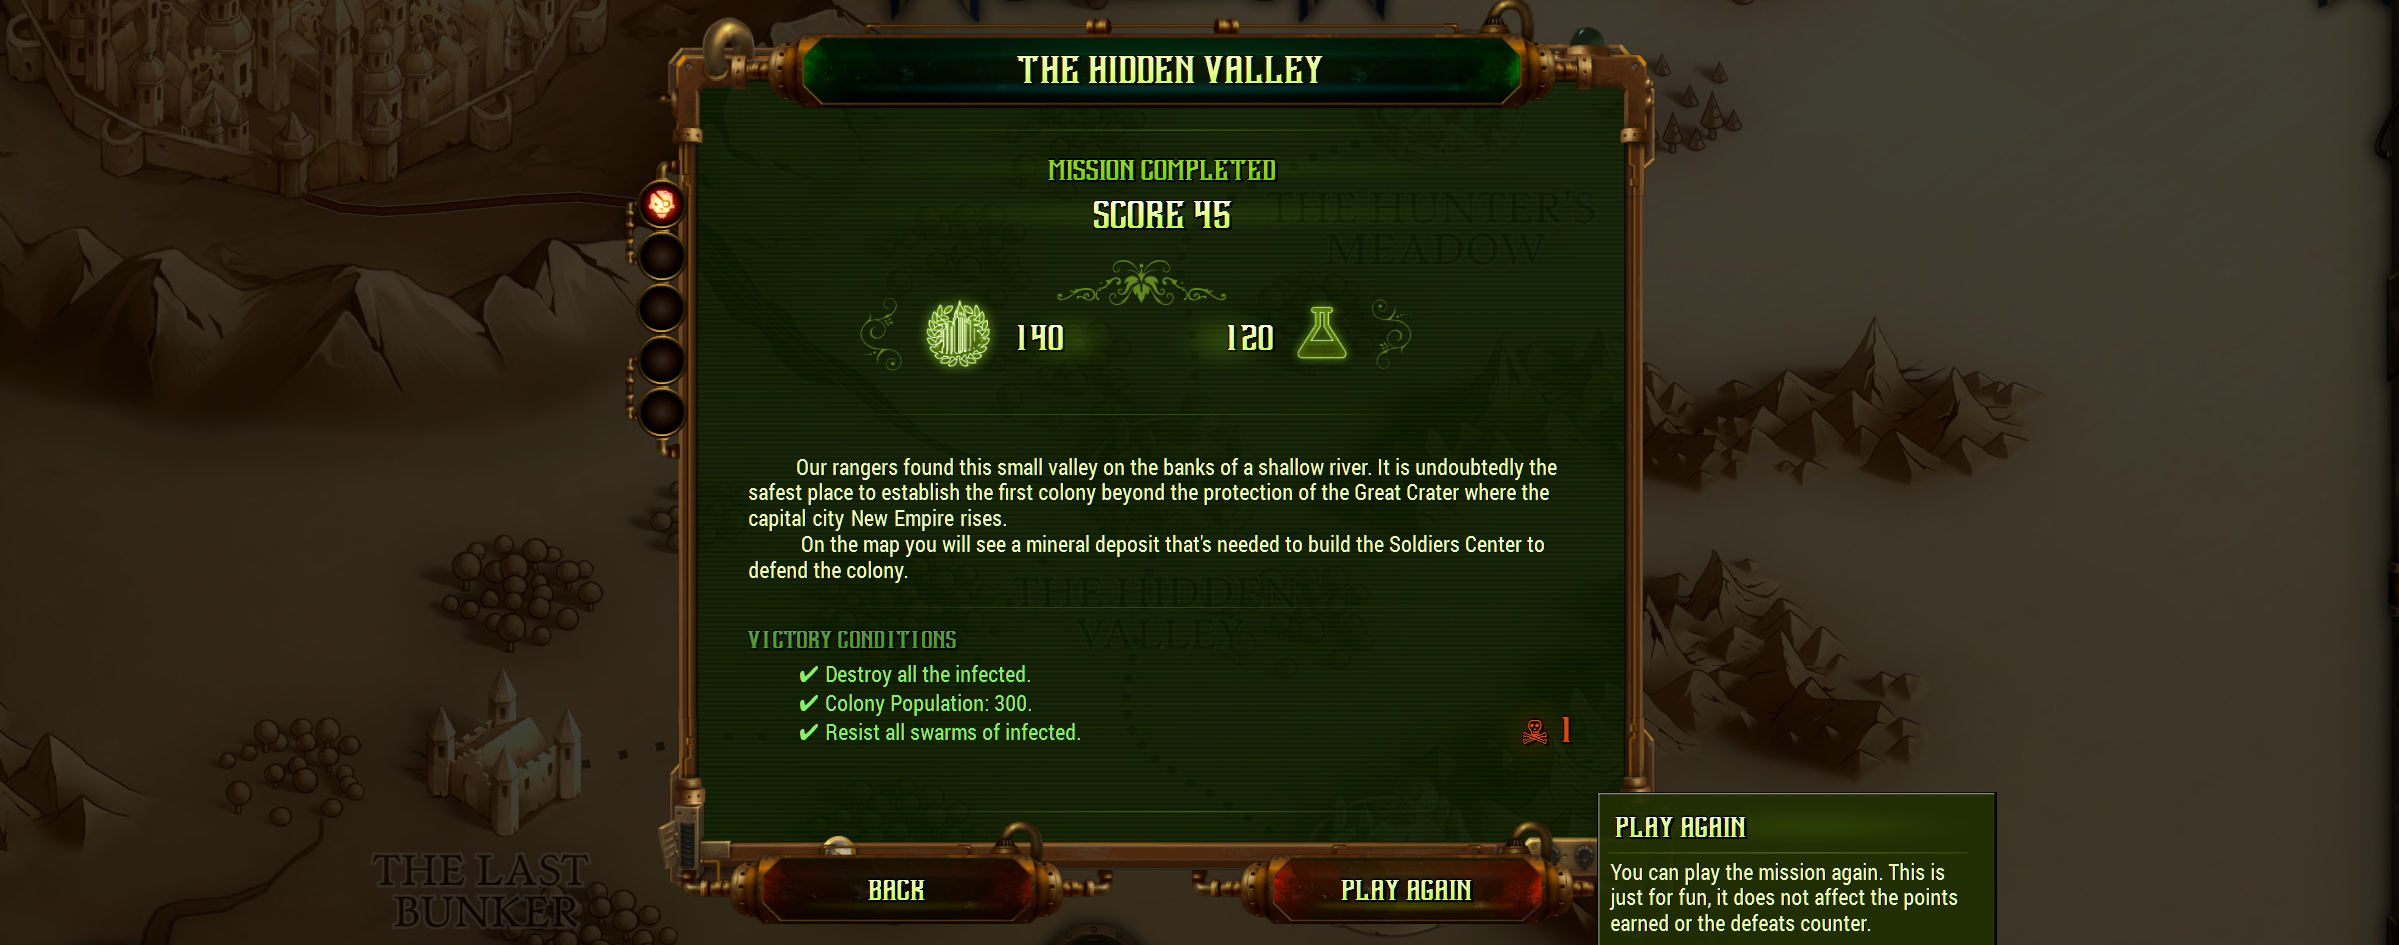 They Are Billions - New Version 1 0 8: Improvements and New Features